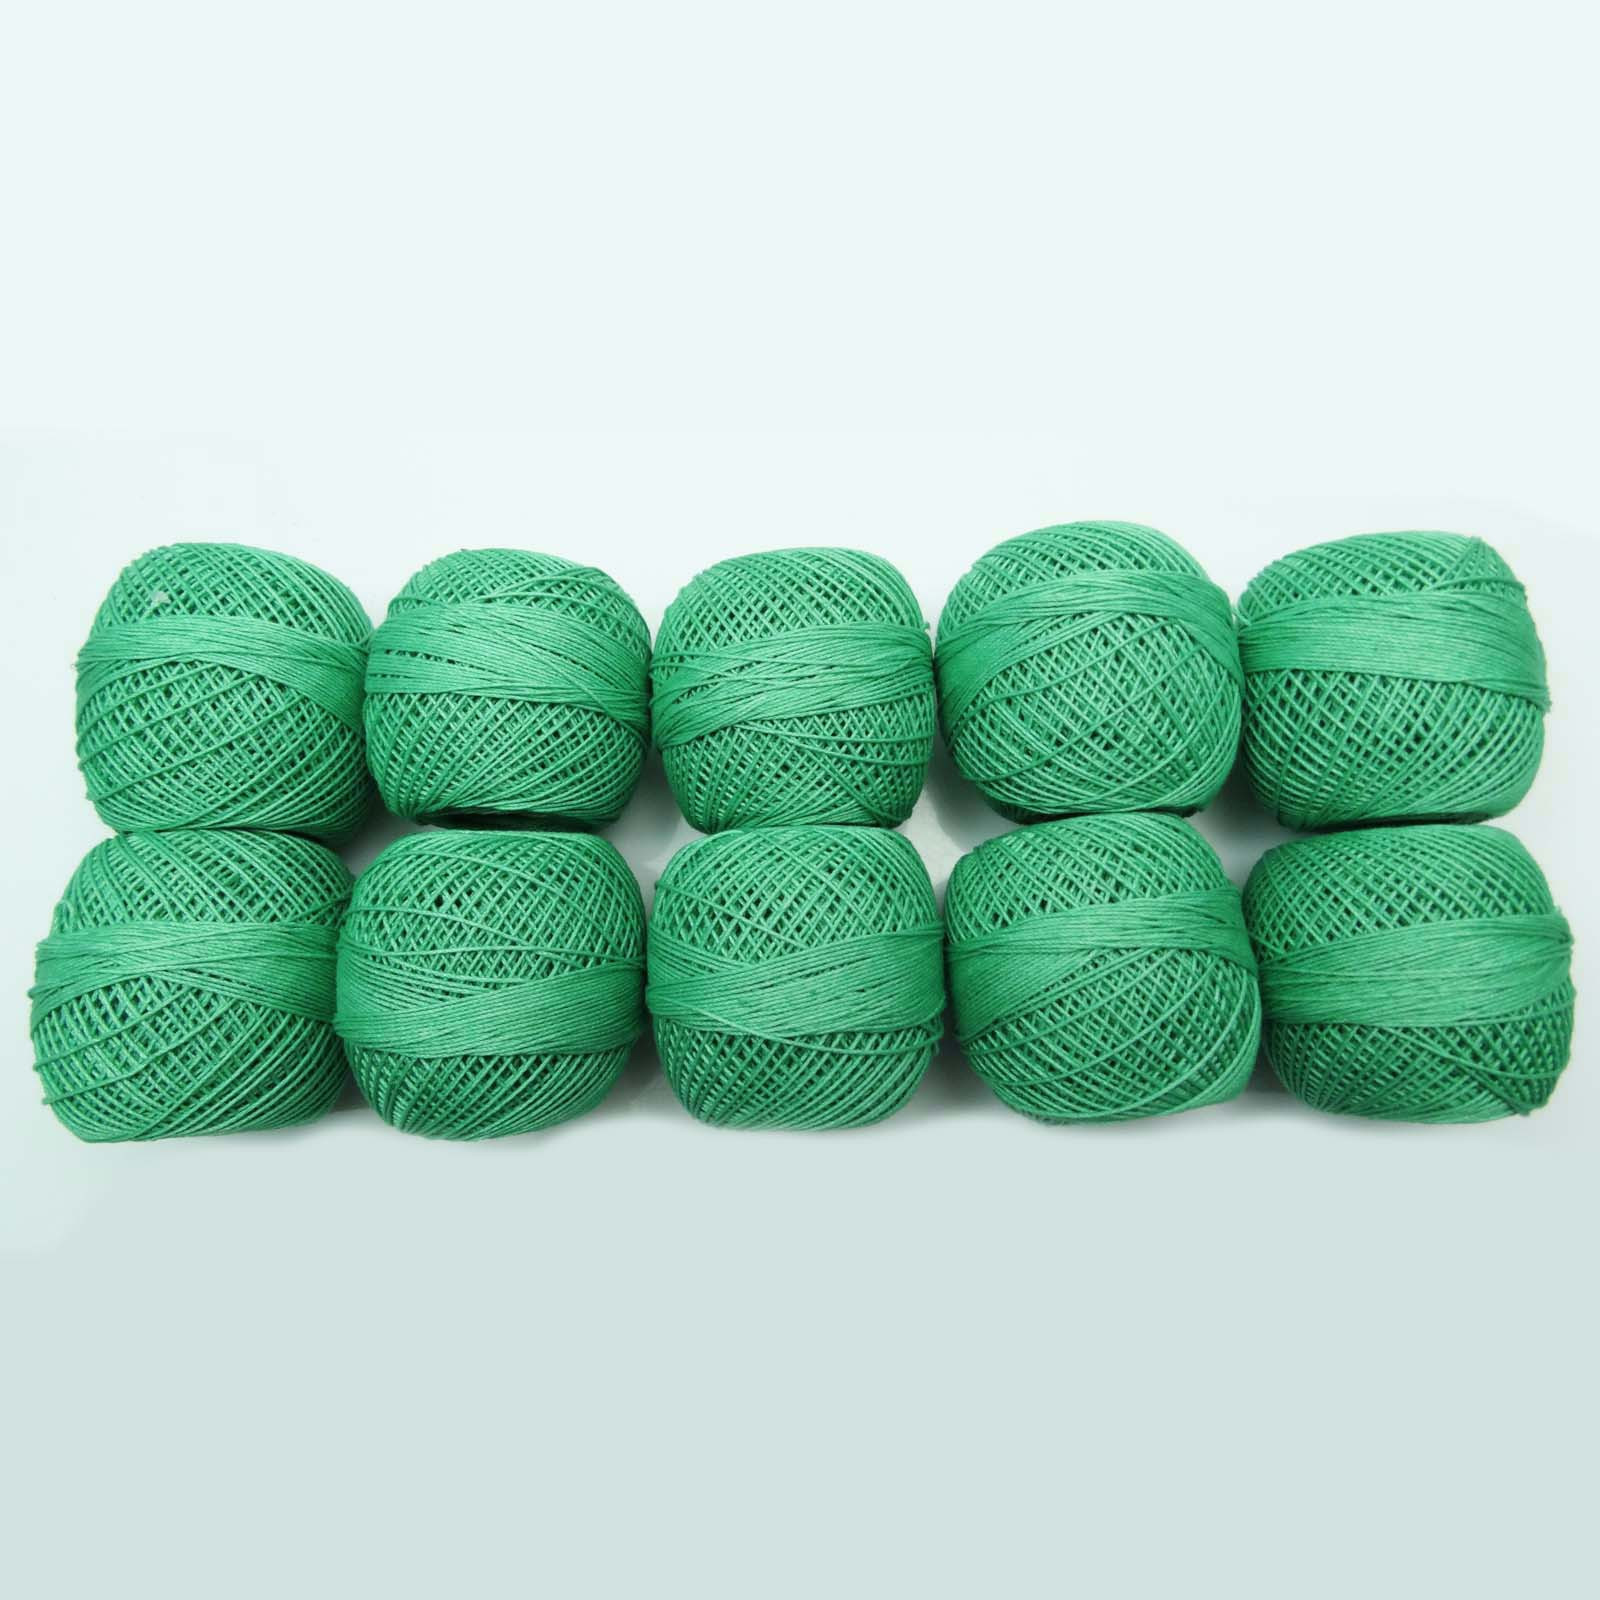 Unique 10 Pcs Yellow Mercer Cotton Crochet Thread Yarn Tatting Crochet Cotton Thread Of New 50 Pics Crochet Cotton Thread